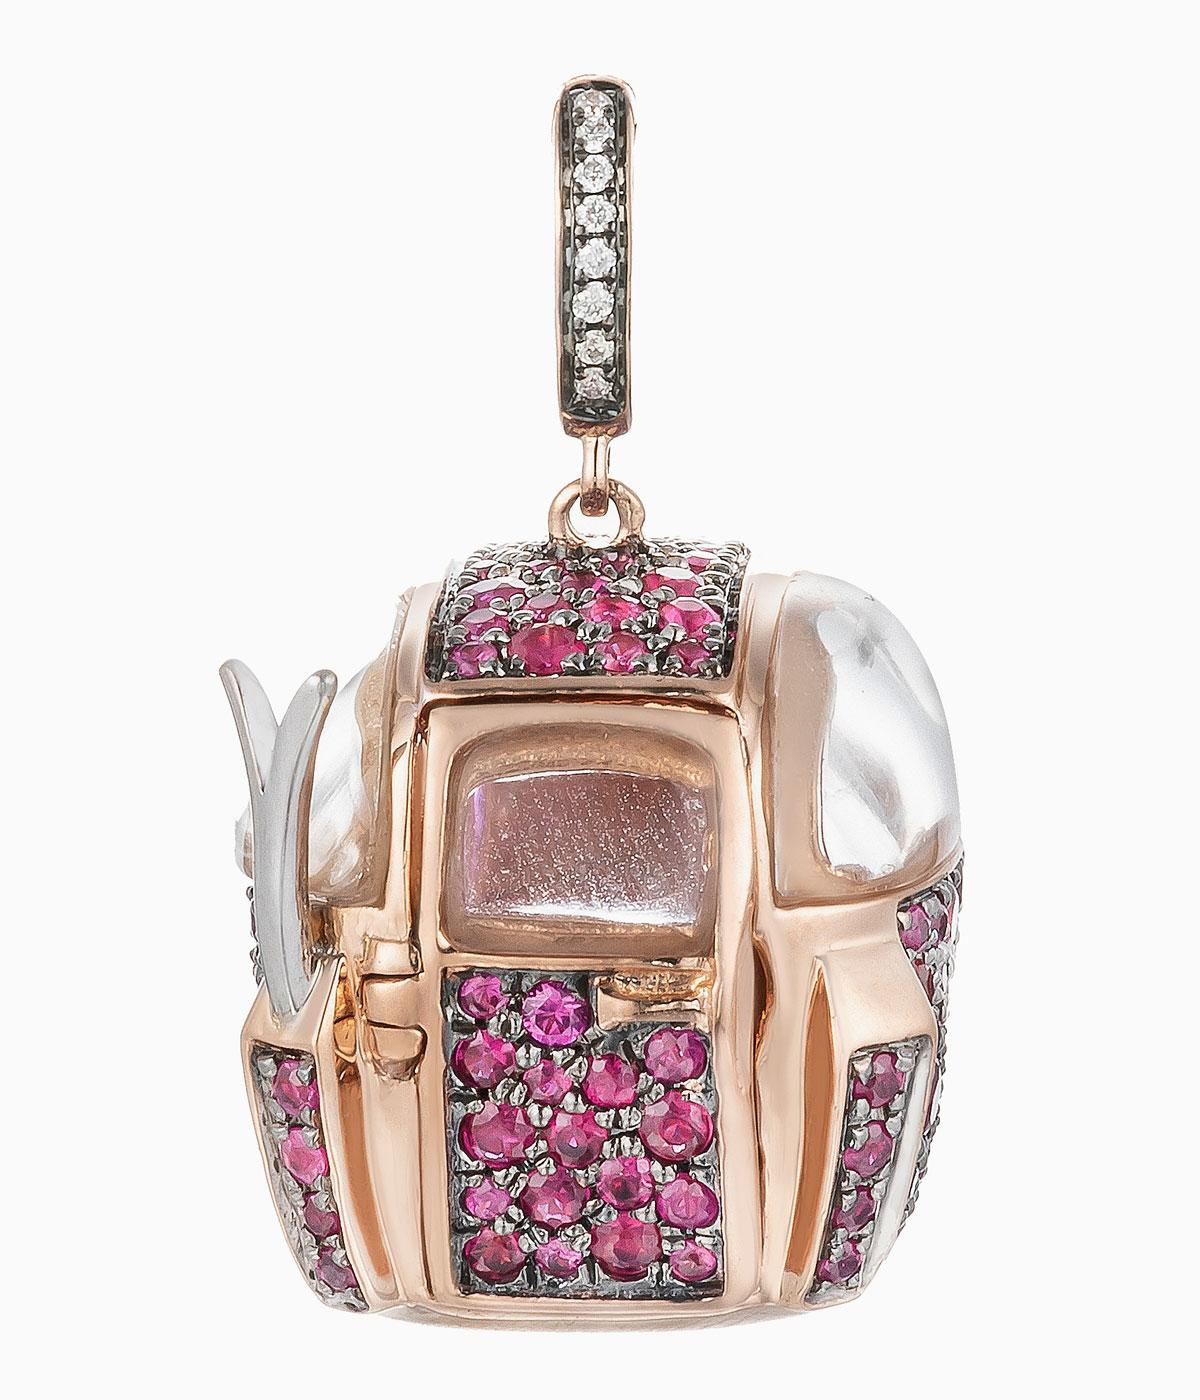 Annoushka Ducas tells her life story in charms